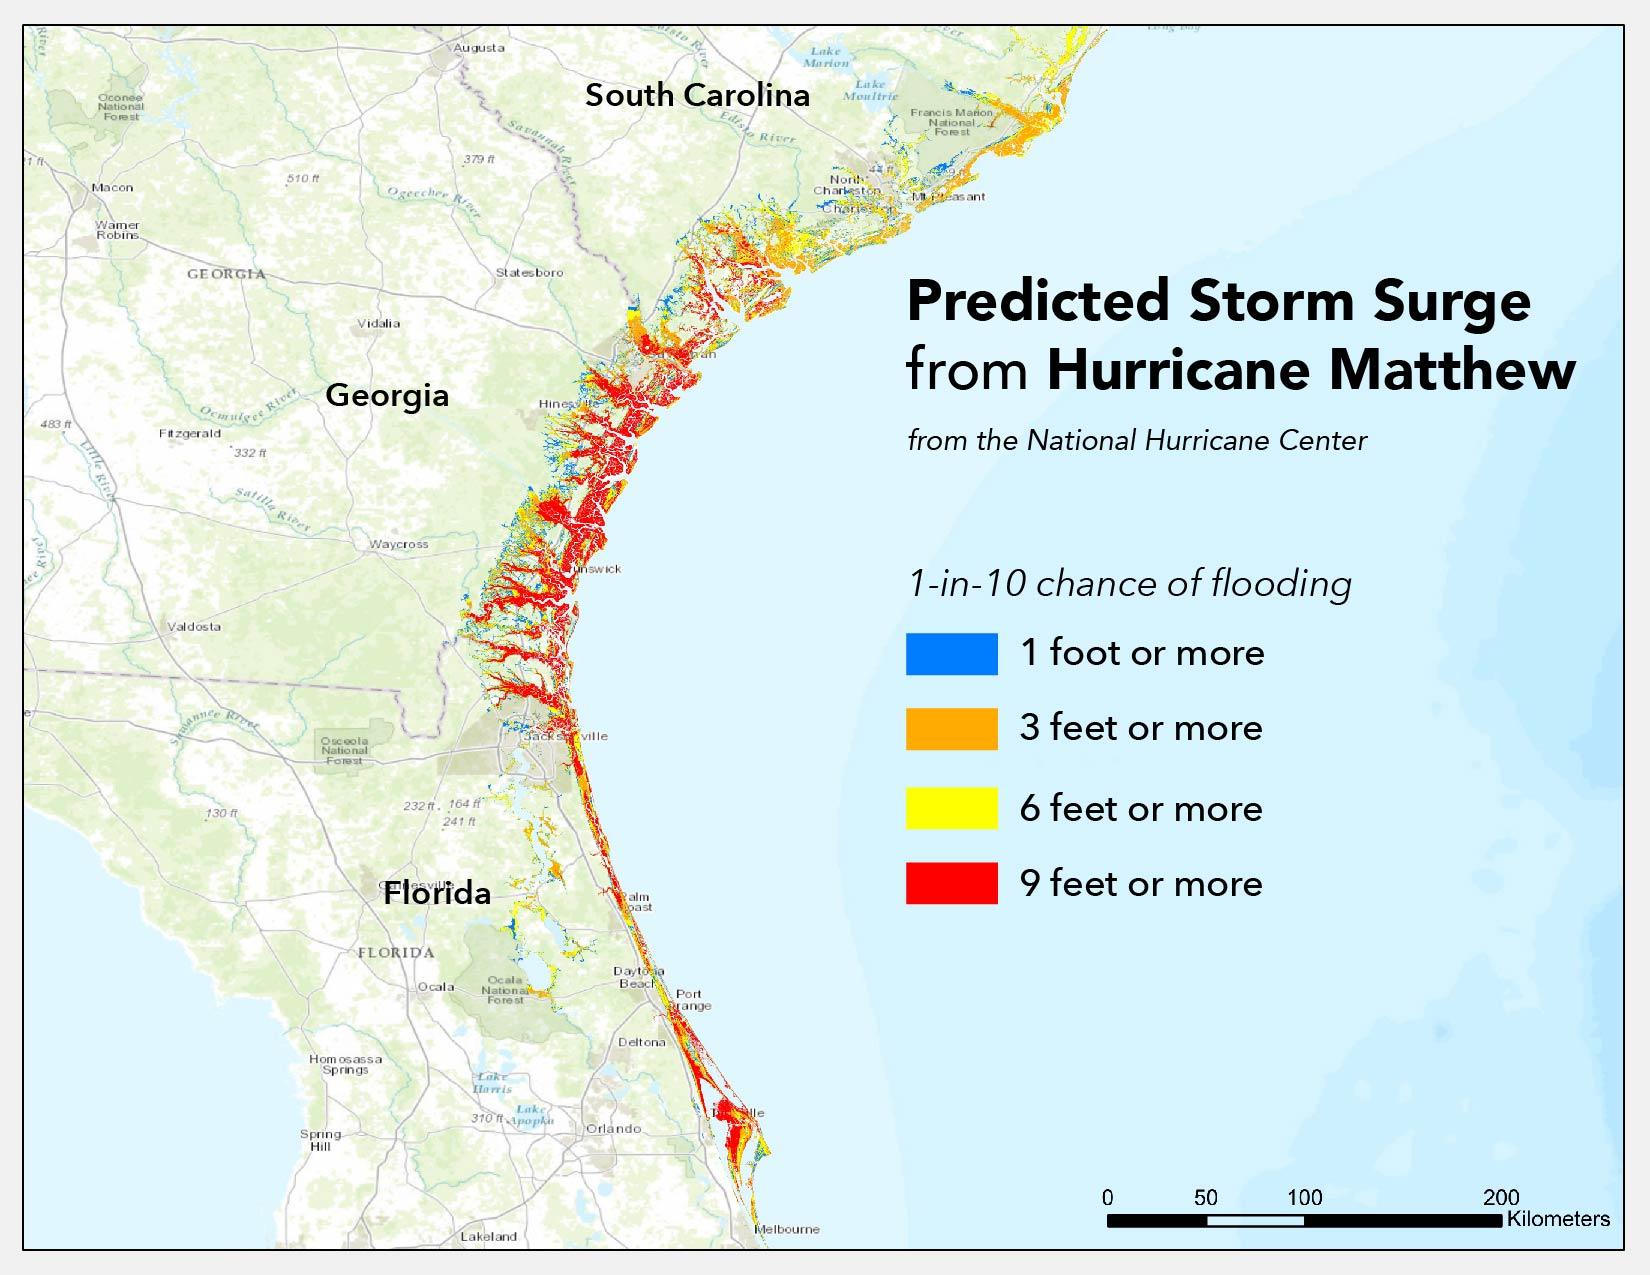 Predicted storm surge map from Hurricane Matthew.